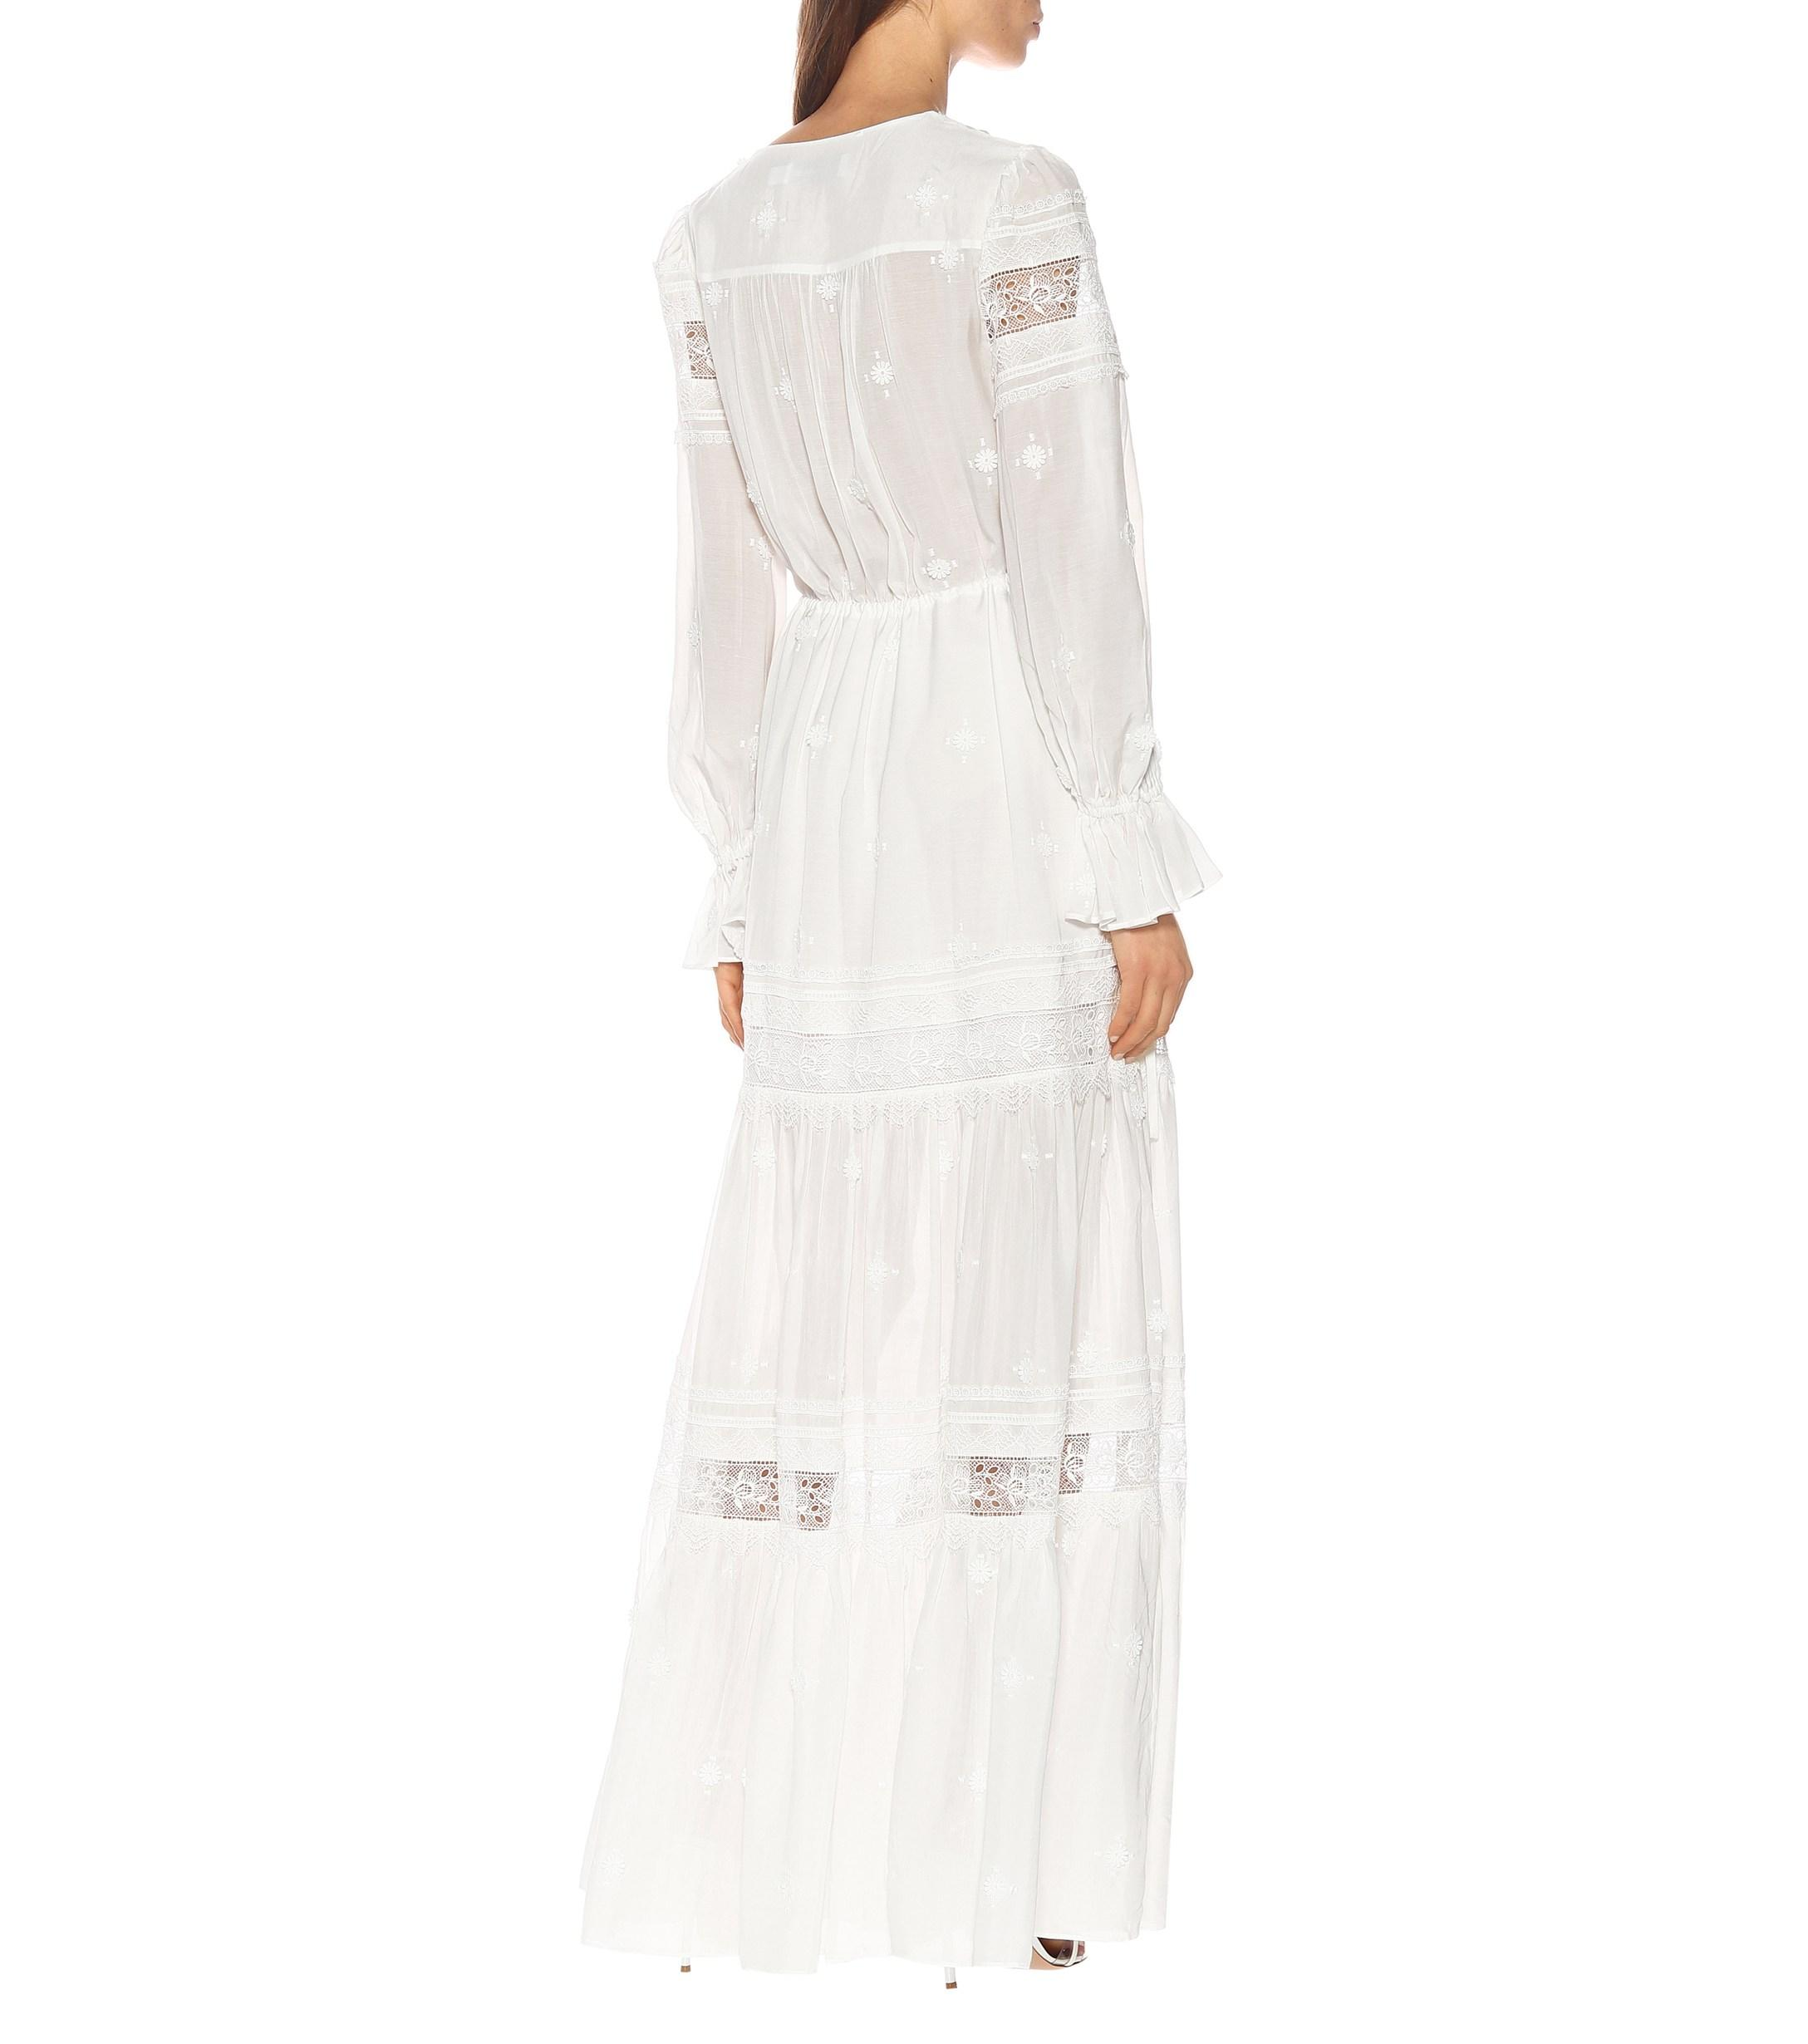 1cc7192c99887 Self-Portrait - White 3d Plumetis Maxi Dress - Lyst. View fullscreen